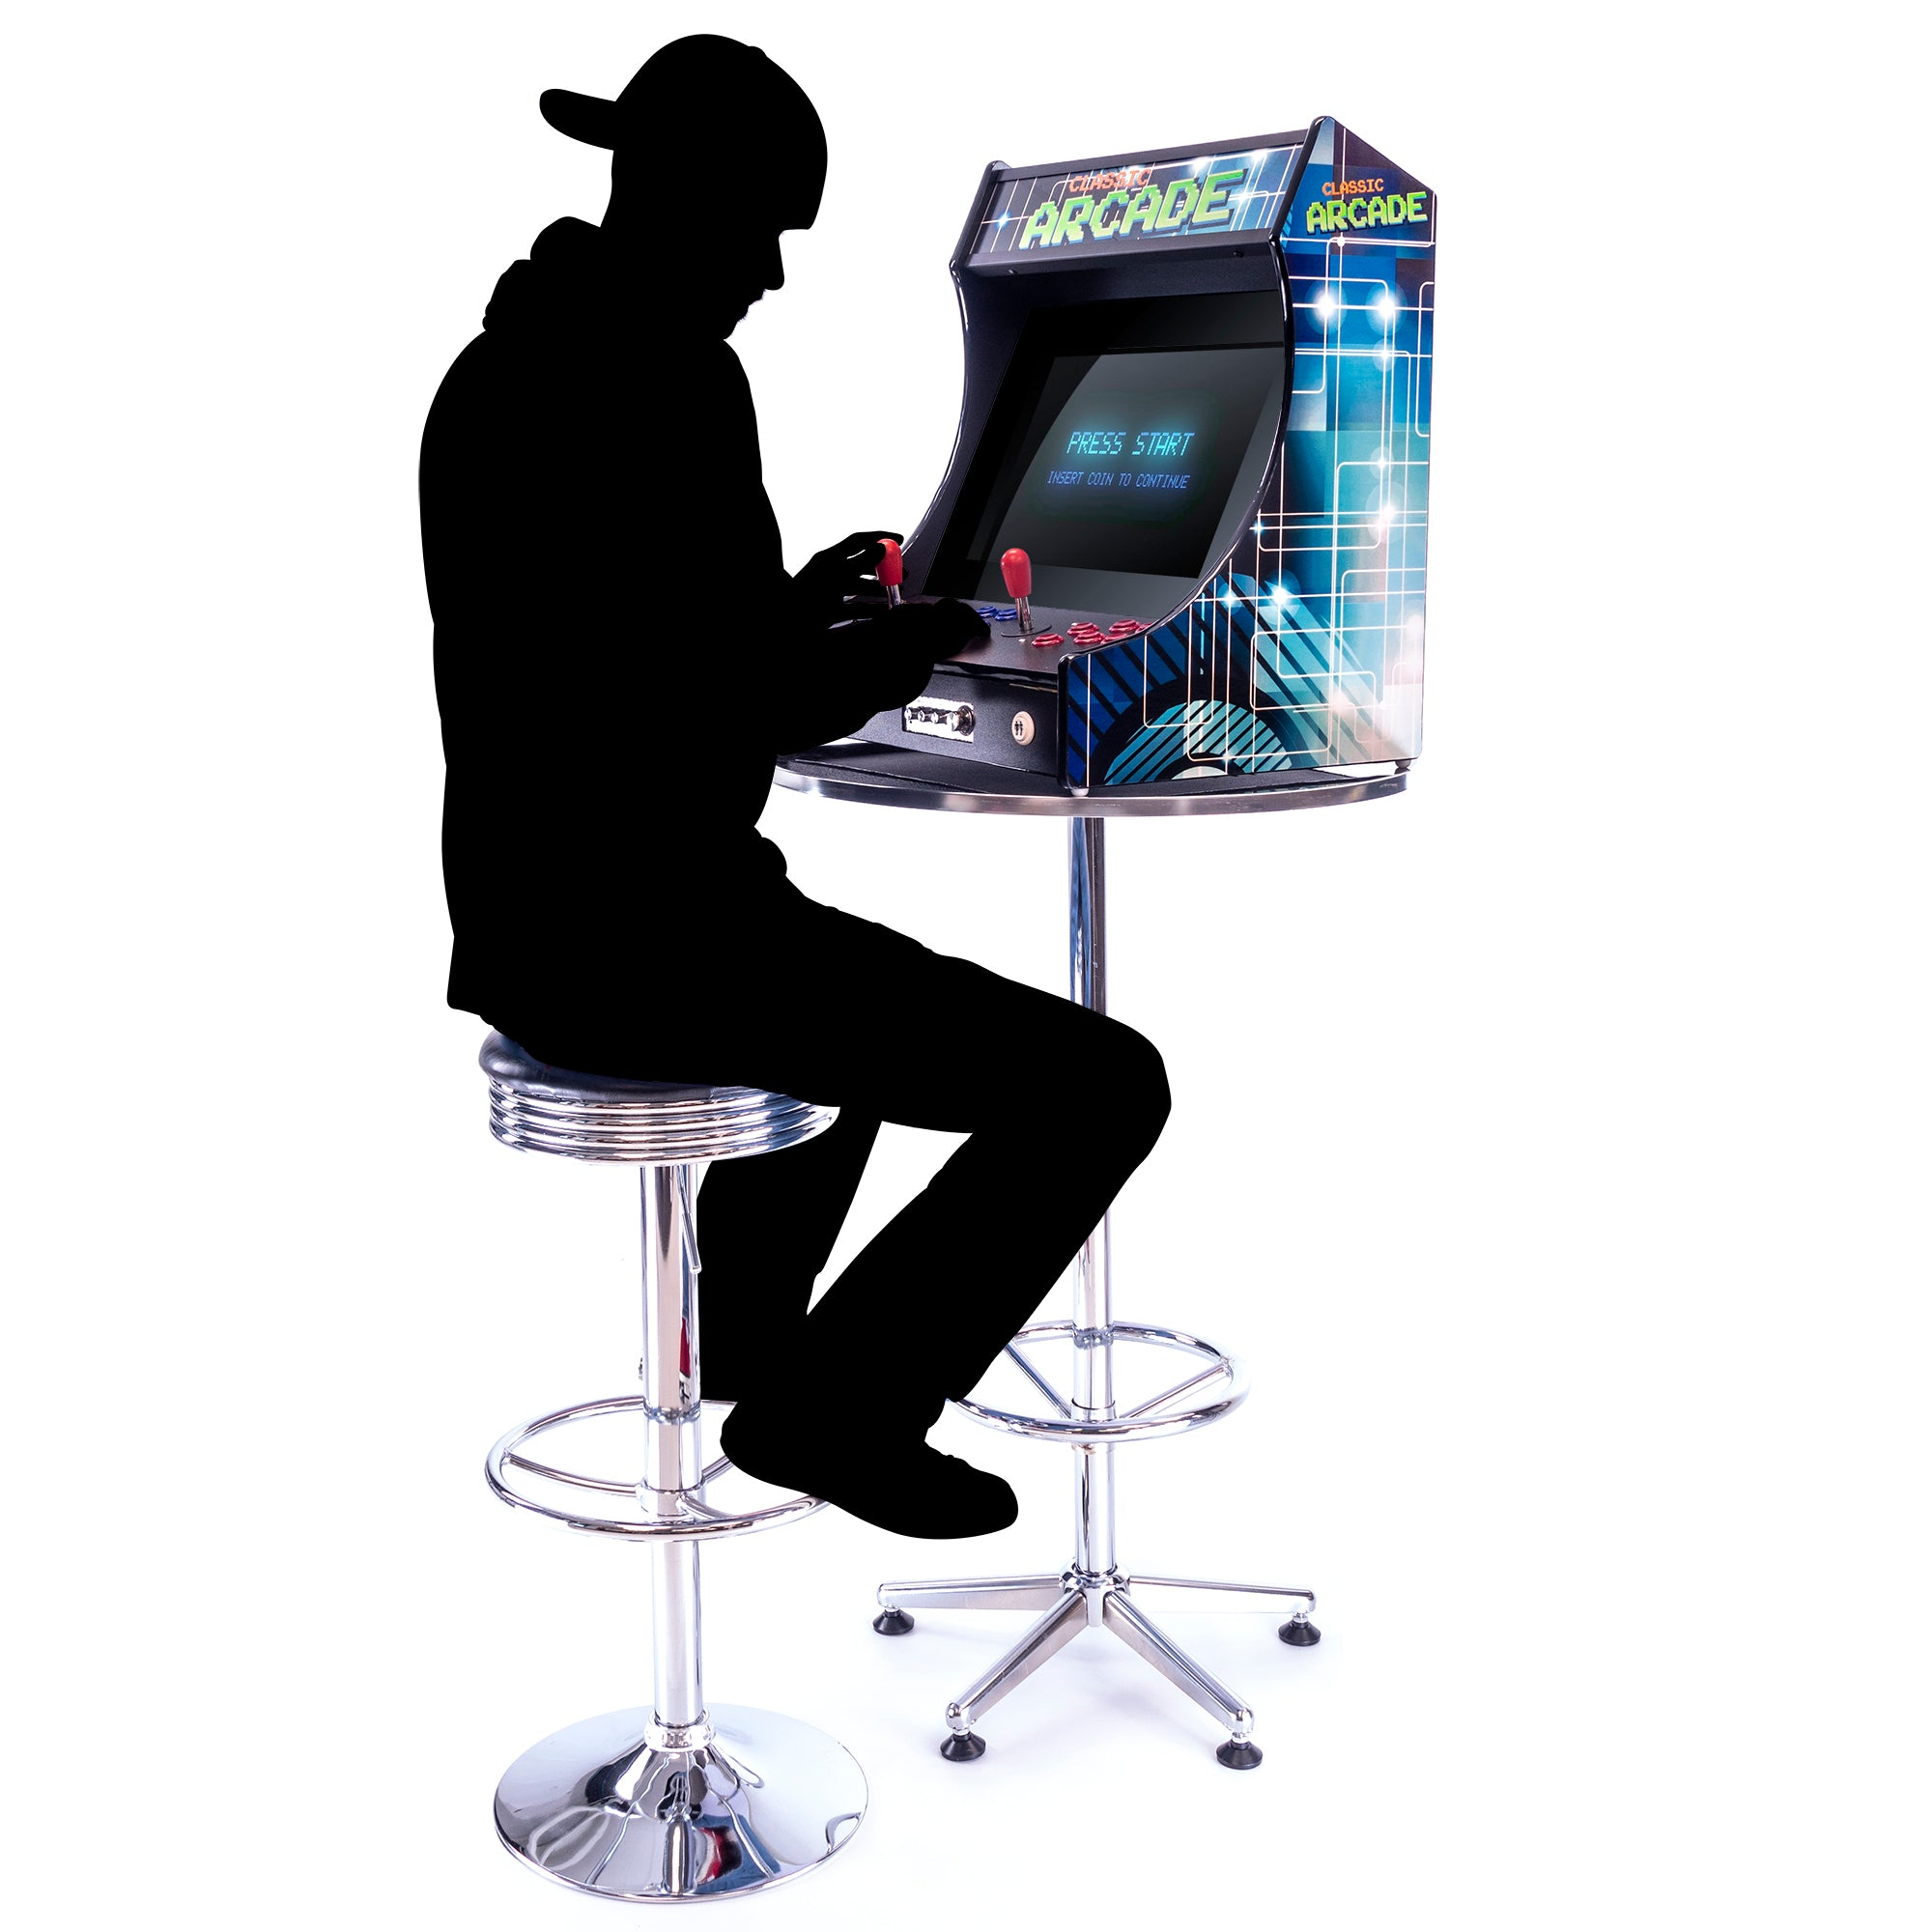 2P 3000 Games Mini Upright Arcade